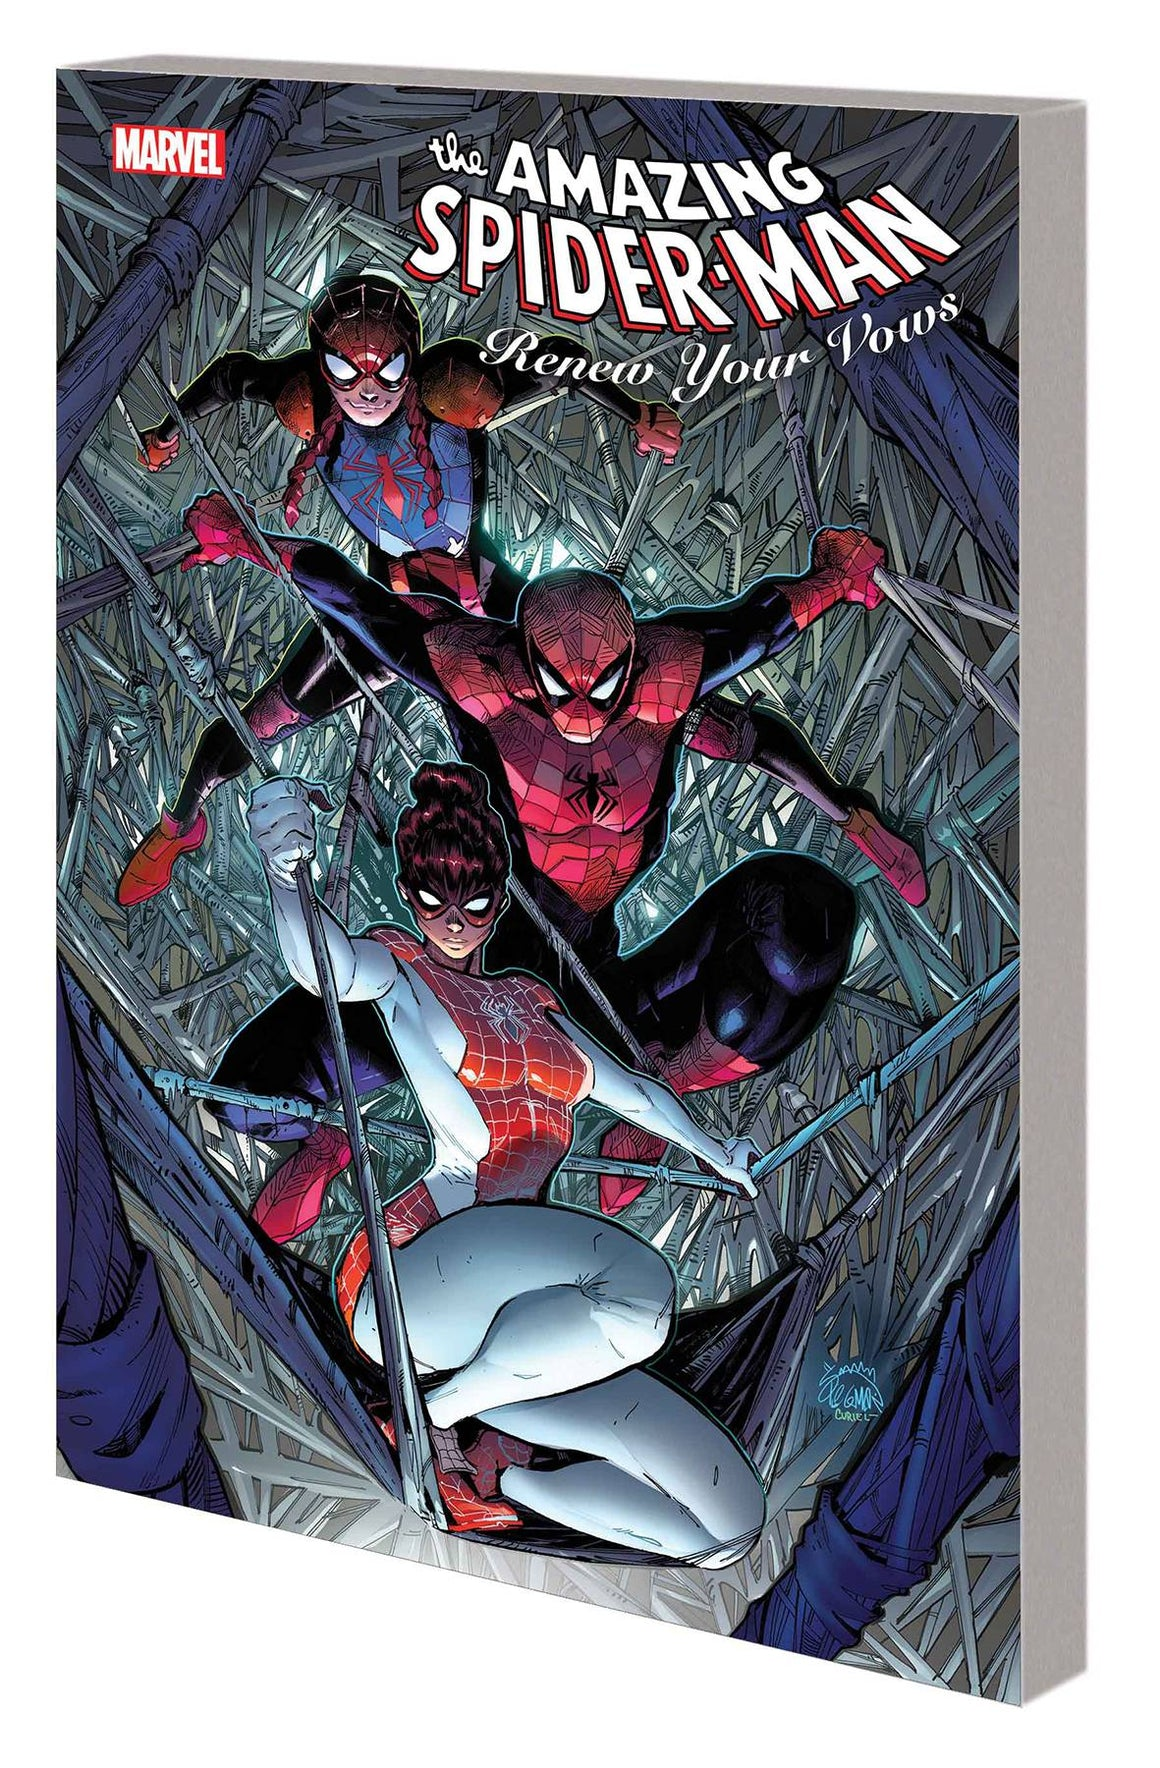 AMAZING SPIDER-MAN RENEW VOWS TP VOL 01 BRAWL IN FAMILY